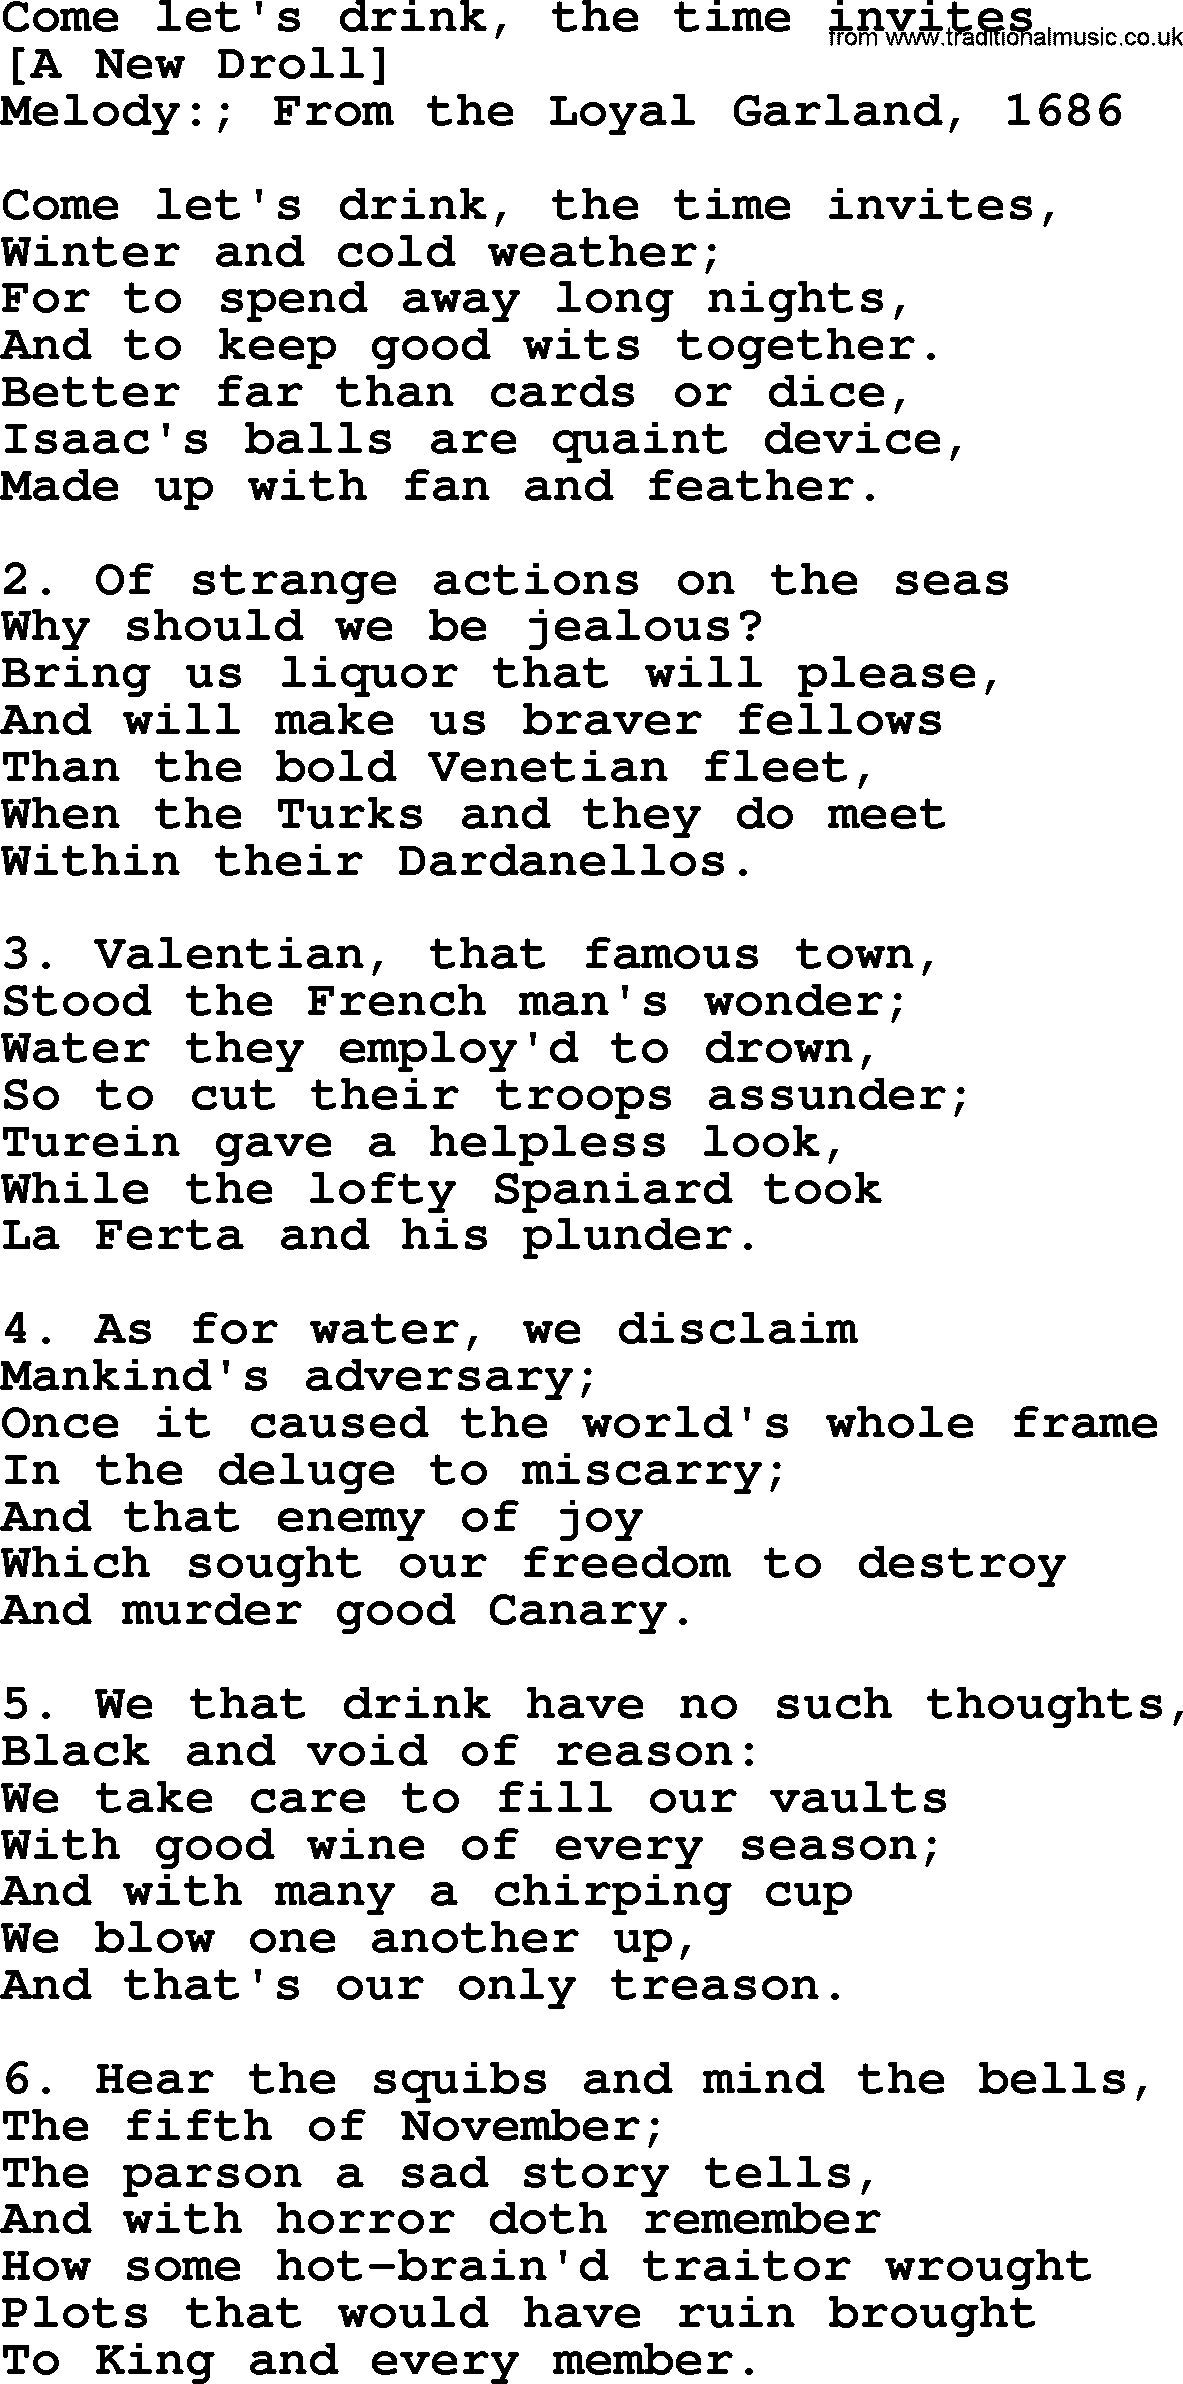 Old english song lyrics for come lets drink the time invites with pdf old english song come lets drink the time invites lyrics stopboris Images